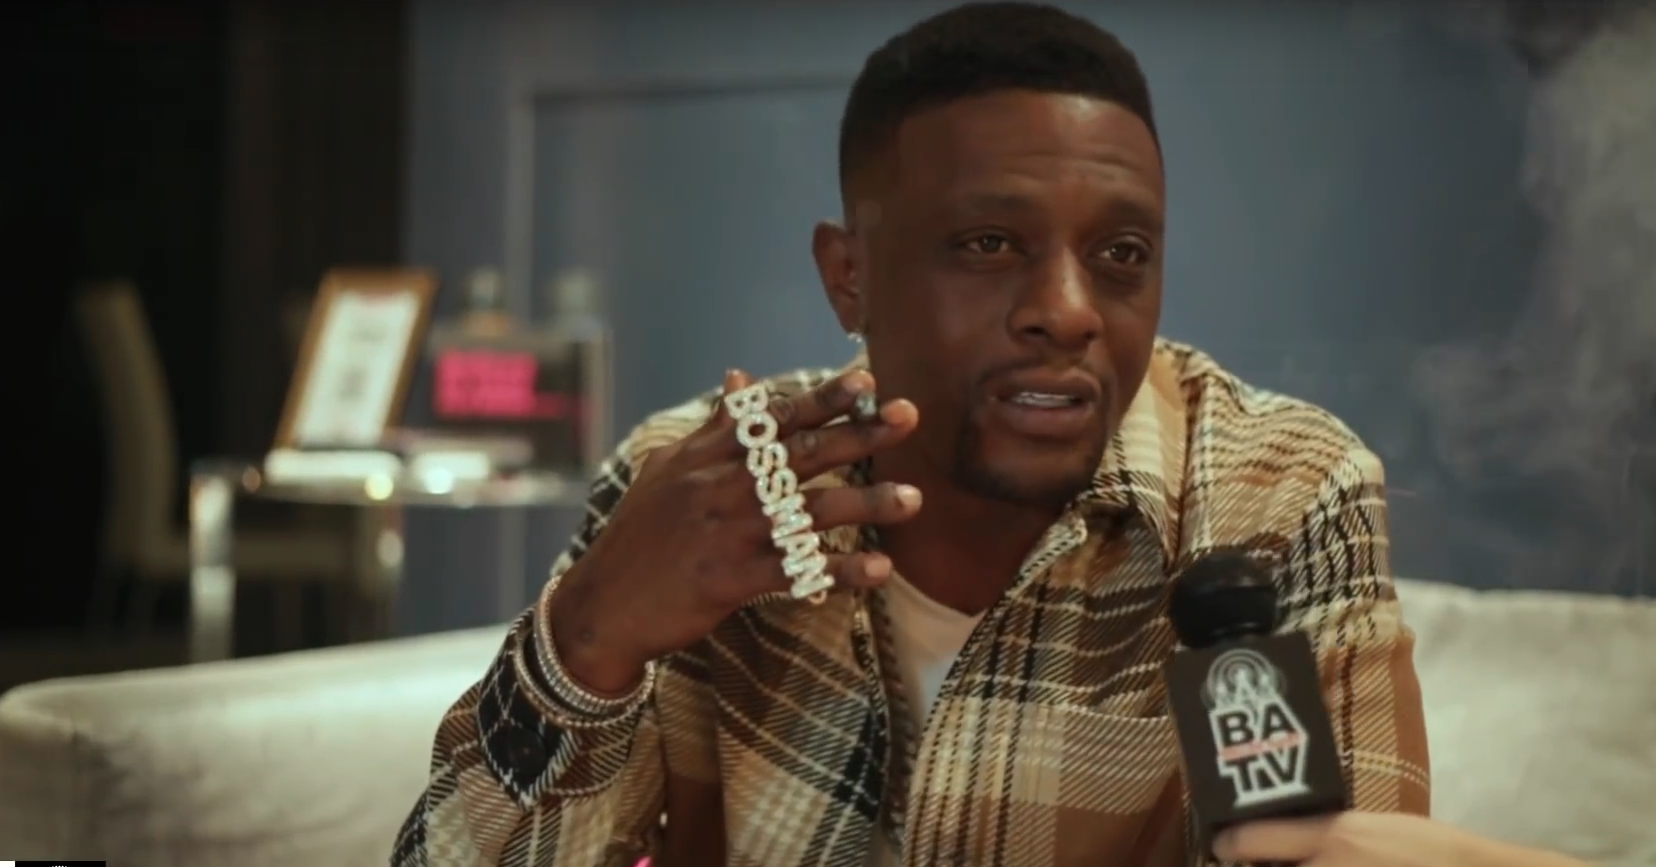 Rapper Boosie Badazz appeared on Baller Alert to diffuse the bubbling backlash he has received after barbed comments towards Dwyane Wade's trans daughter. (Screenshot via YouTube / Baller Alert)